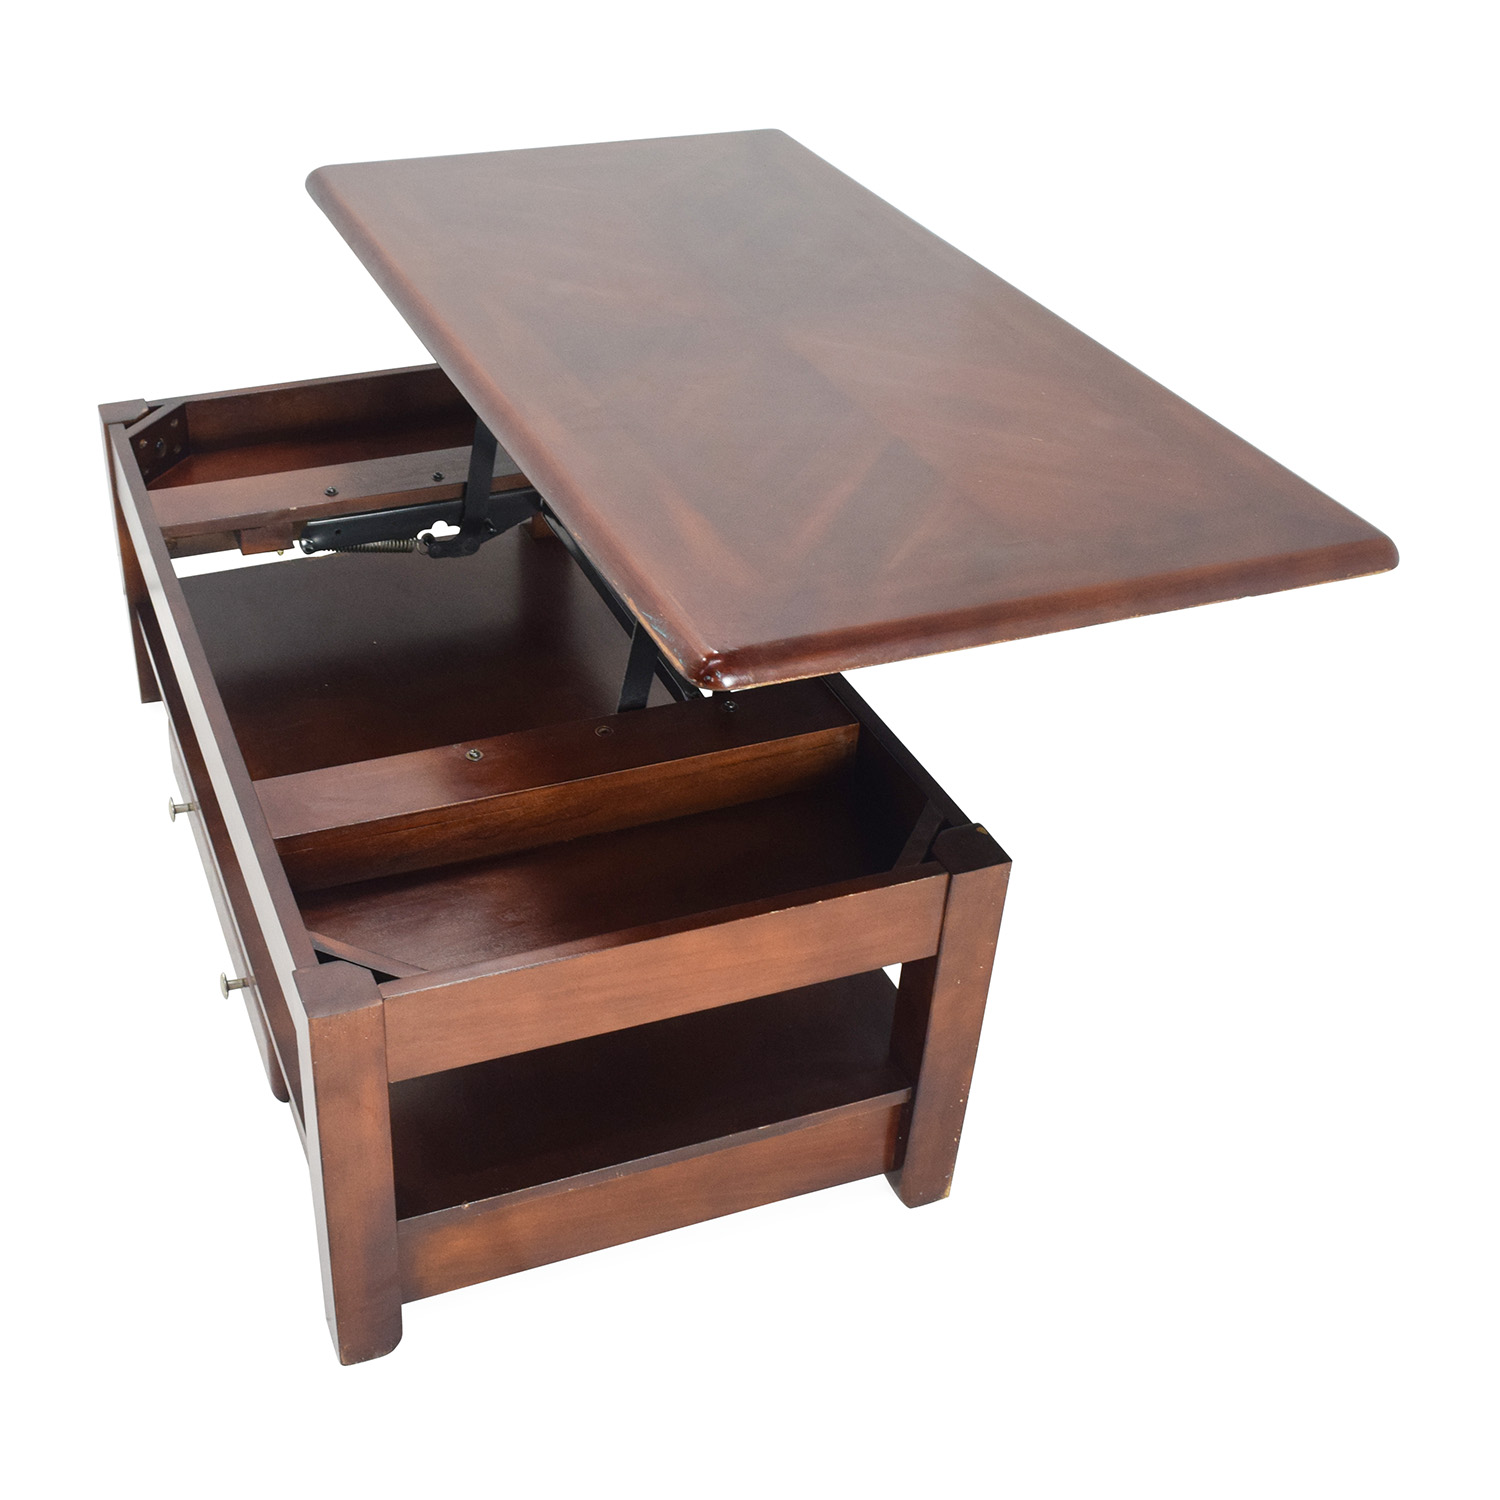 Swell 80 Off Raymour Flanigan Raymour Flanigan Lift Top Coffe Table In Cherry Tables Andrewgaddart Wooden Chair Designs For Living Room Andrewgaddartcom